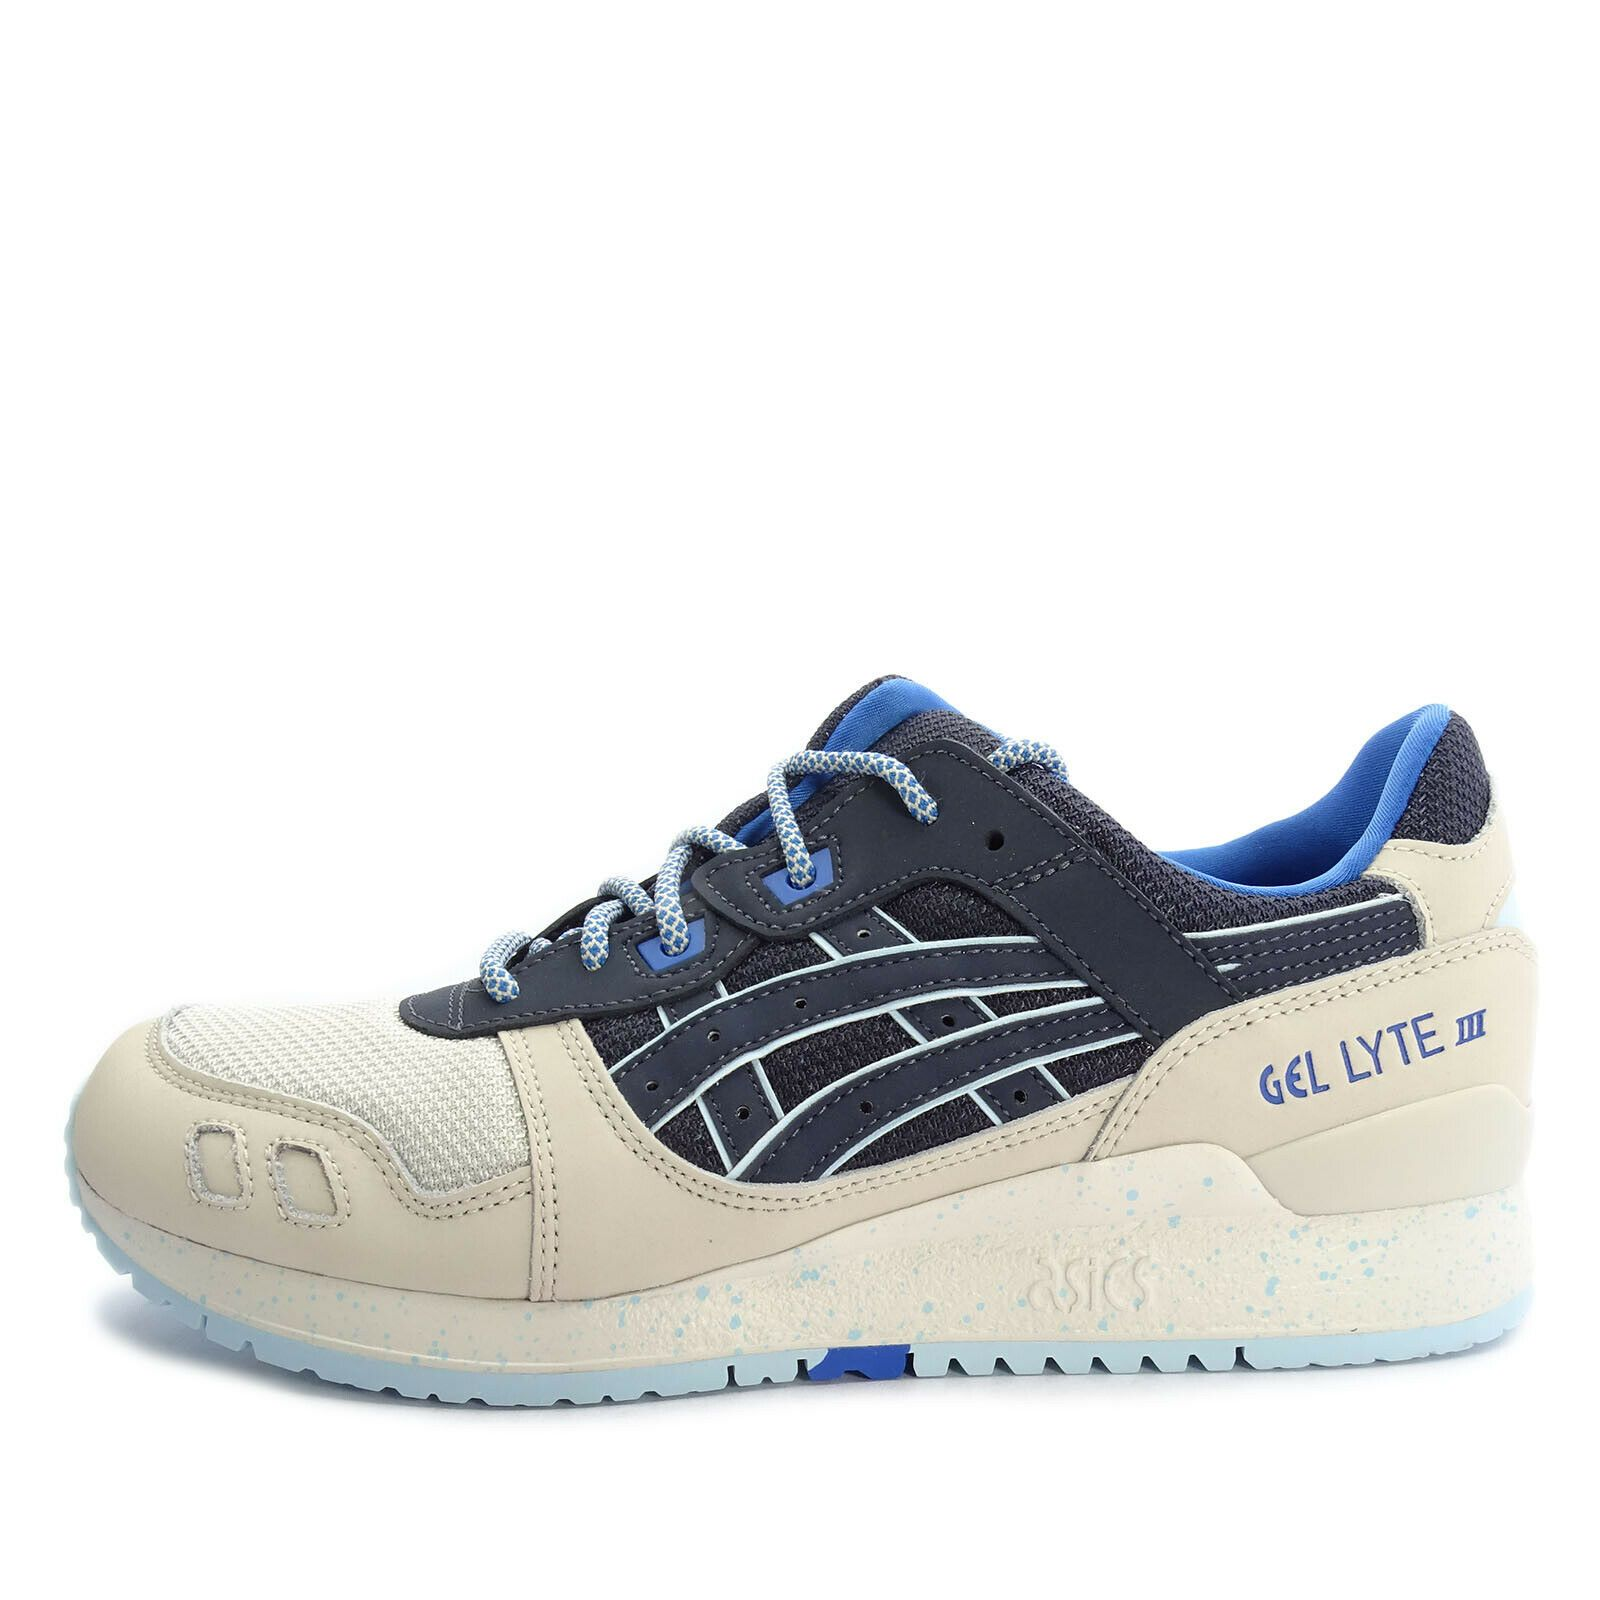 complemento posterior juez  Asics Tiger GEL-Lyte III [H7L0L-5858] Men Casual Shoes India Ink/Sail US  7.5 | Casual running shoes, Casual shoes women, Running shoes for men